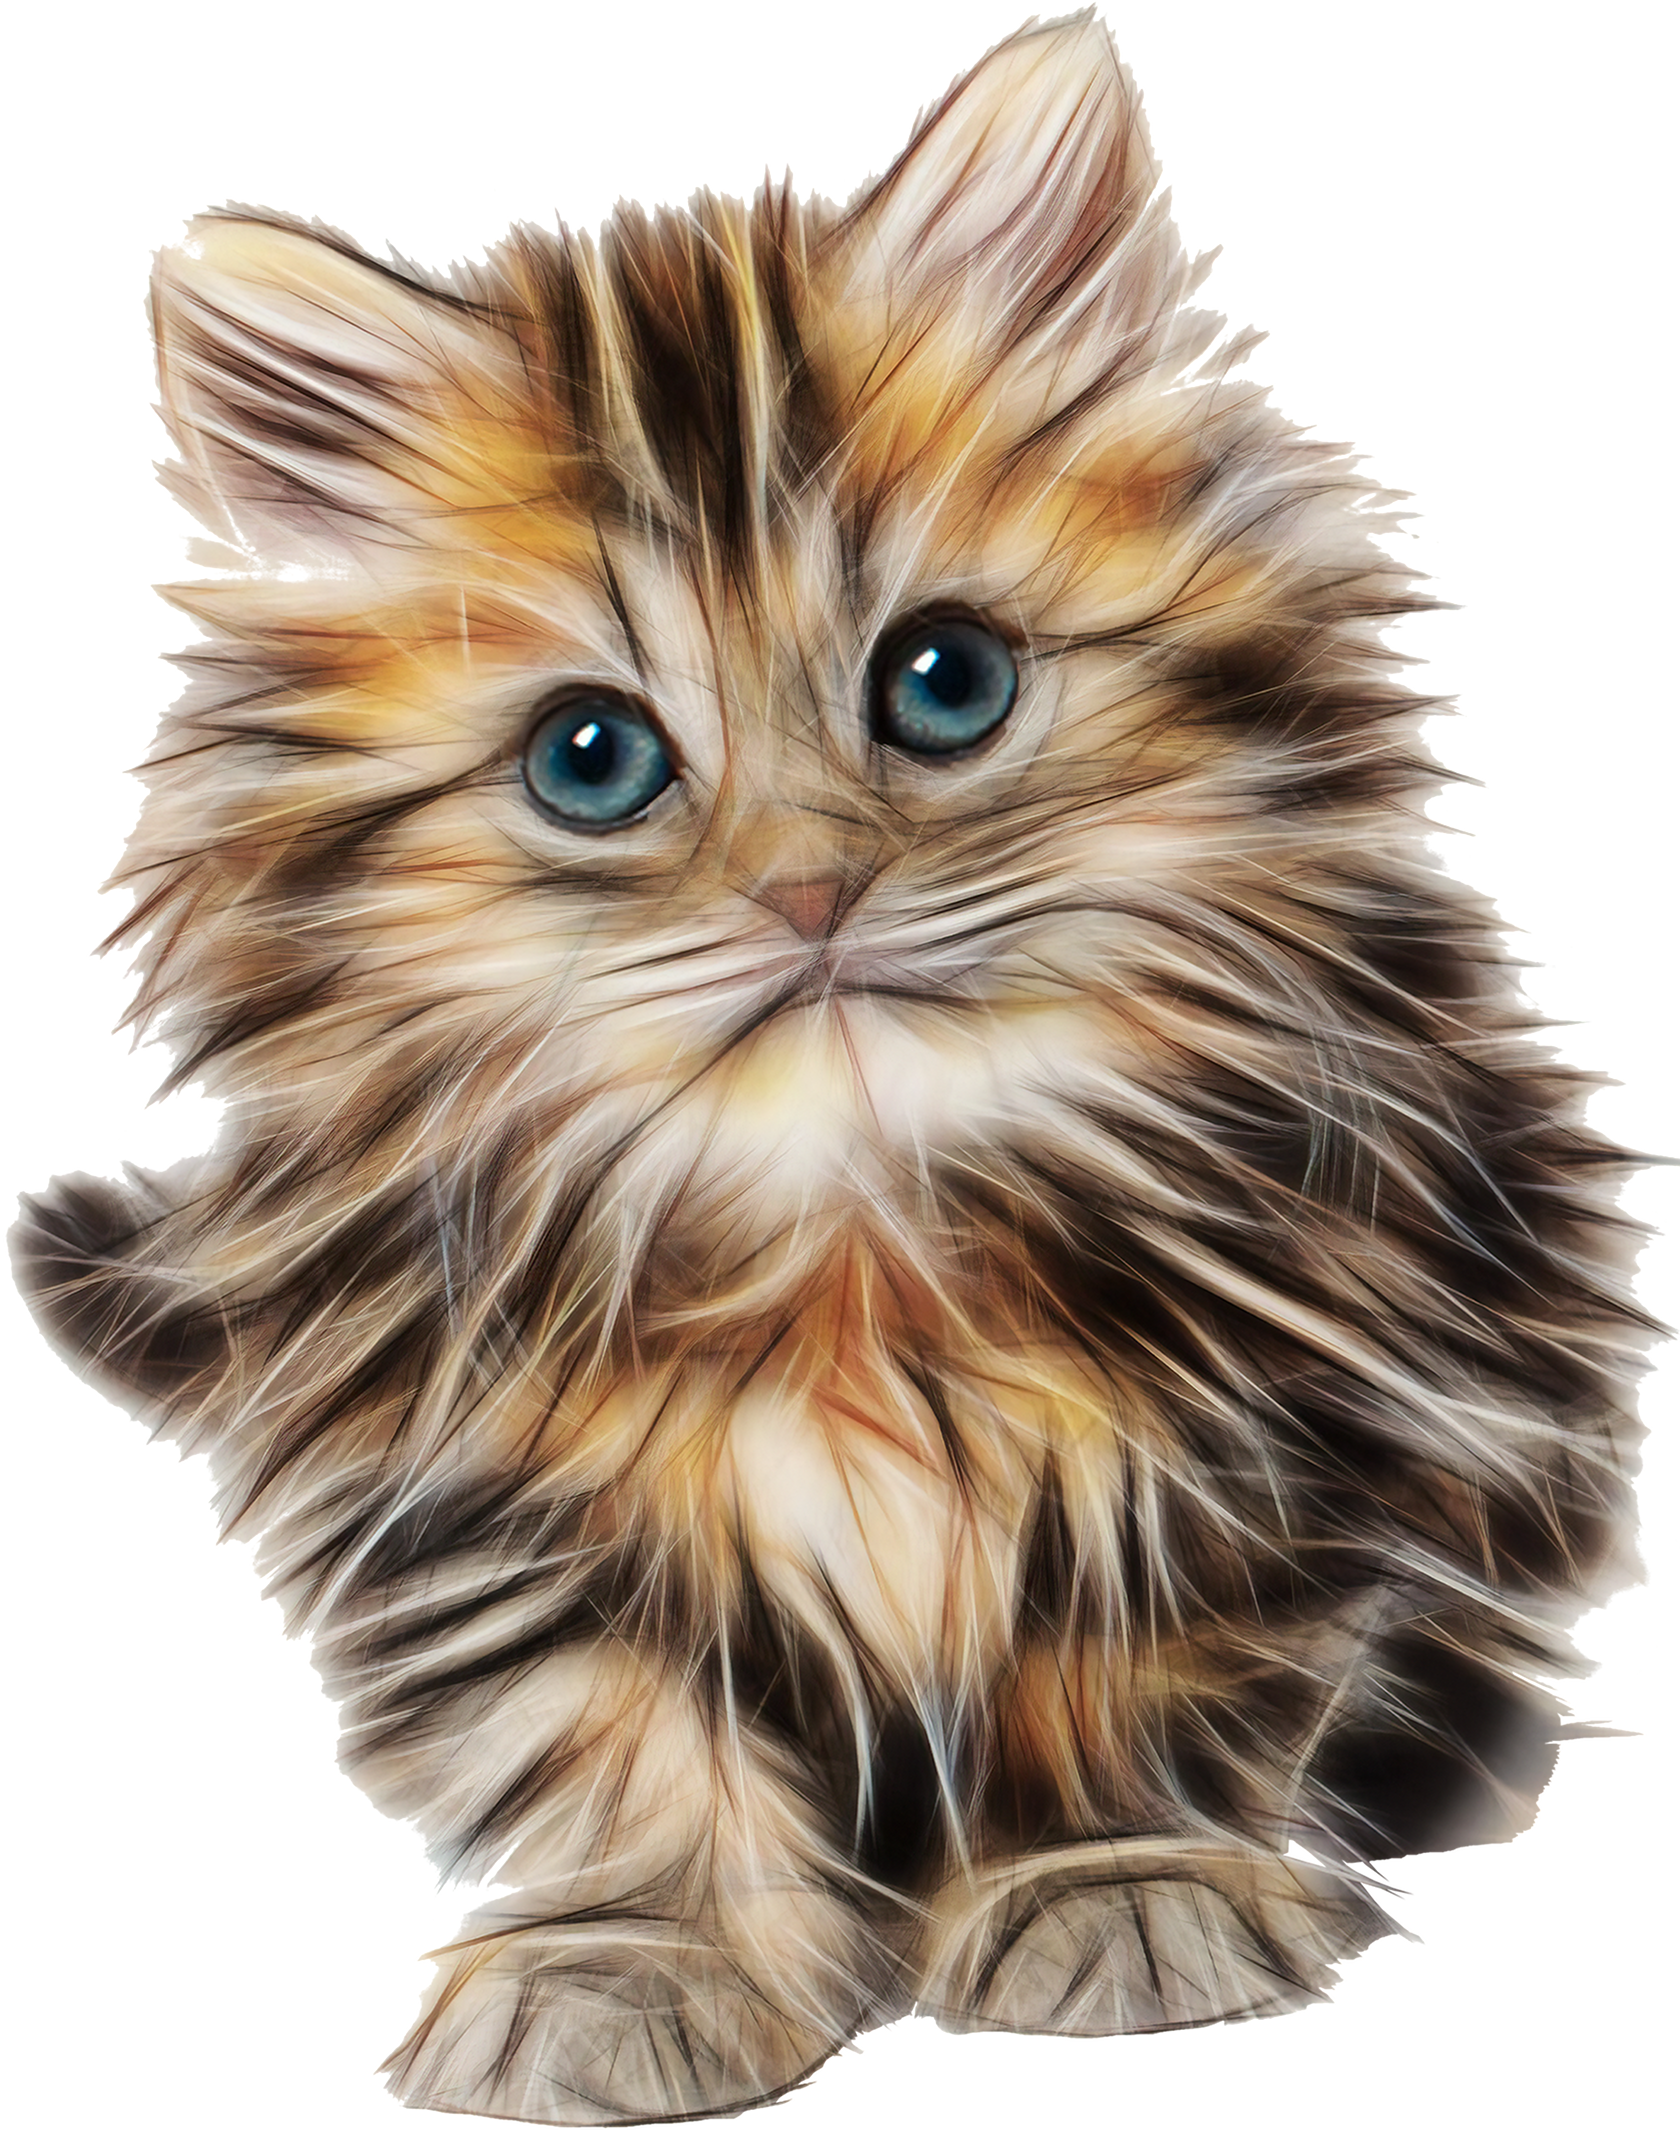 Kitten On Transparency Fluffy Kittens Kittens Cutest Kittens Gifts